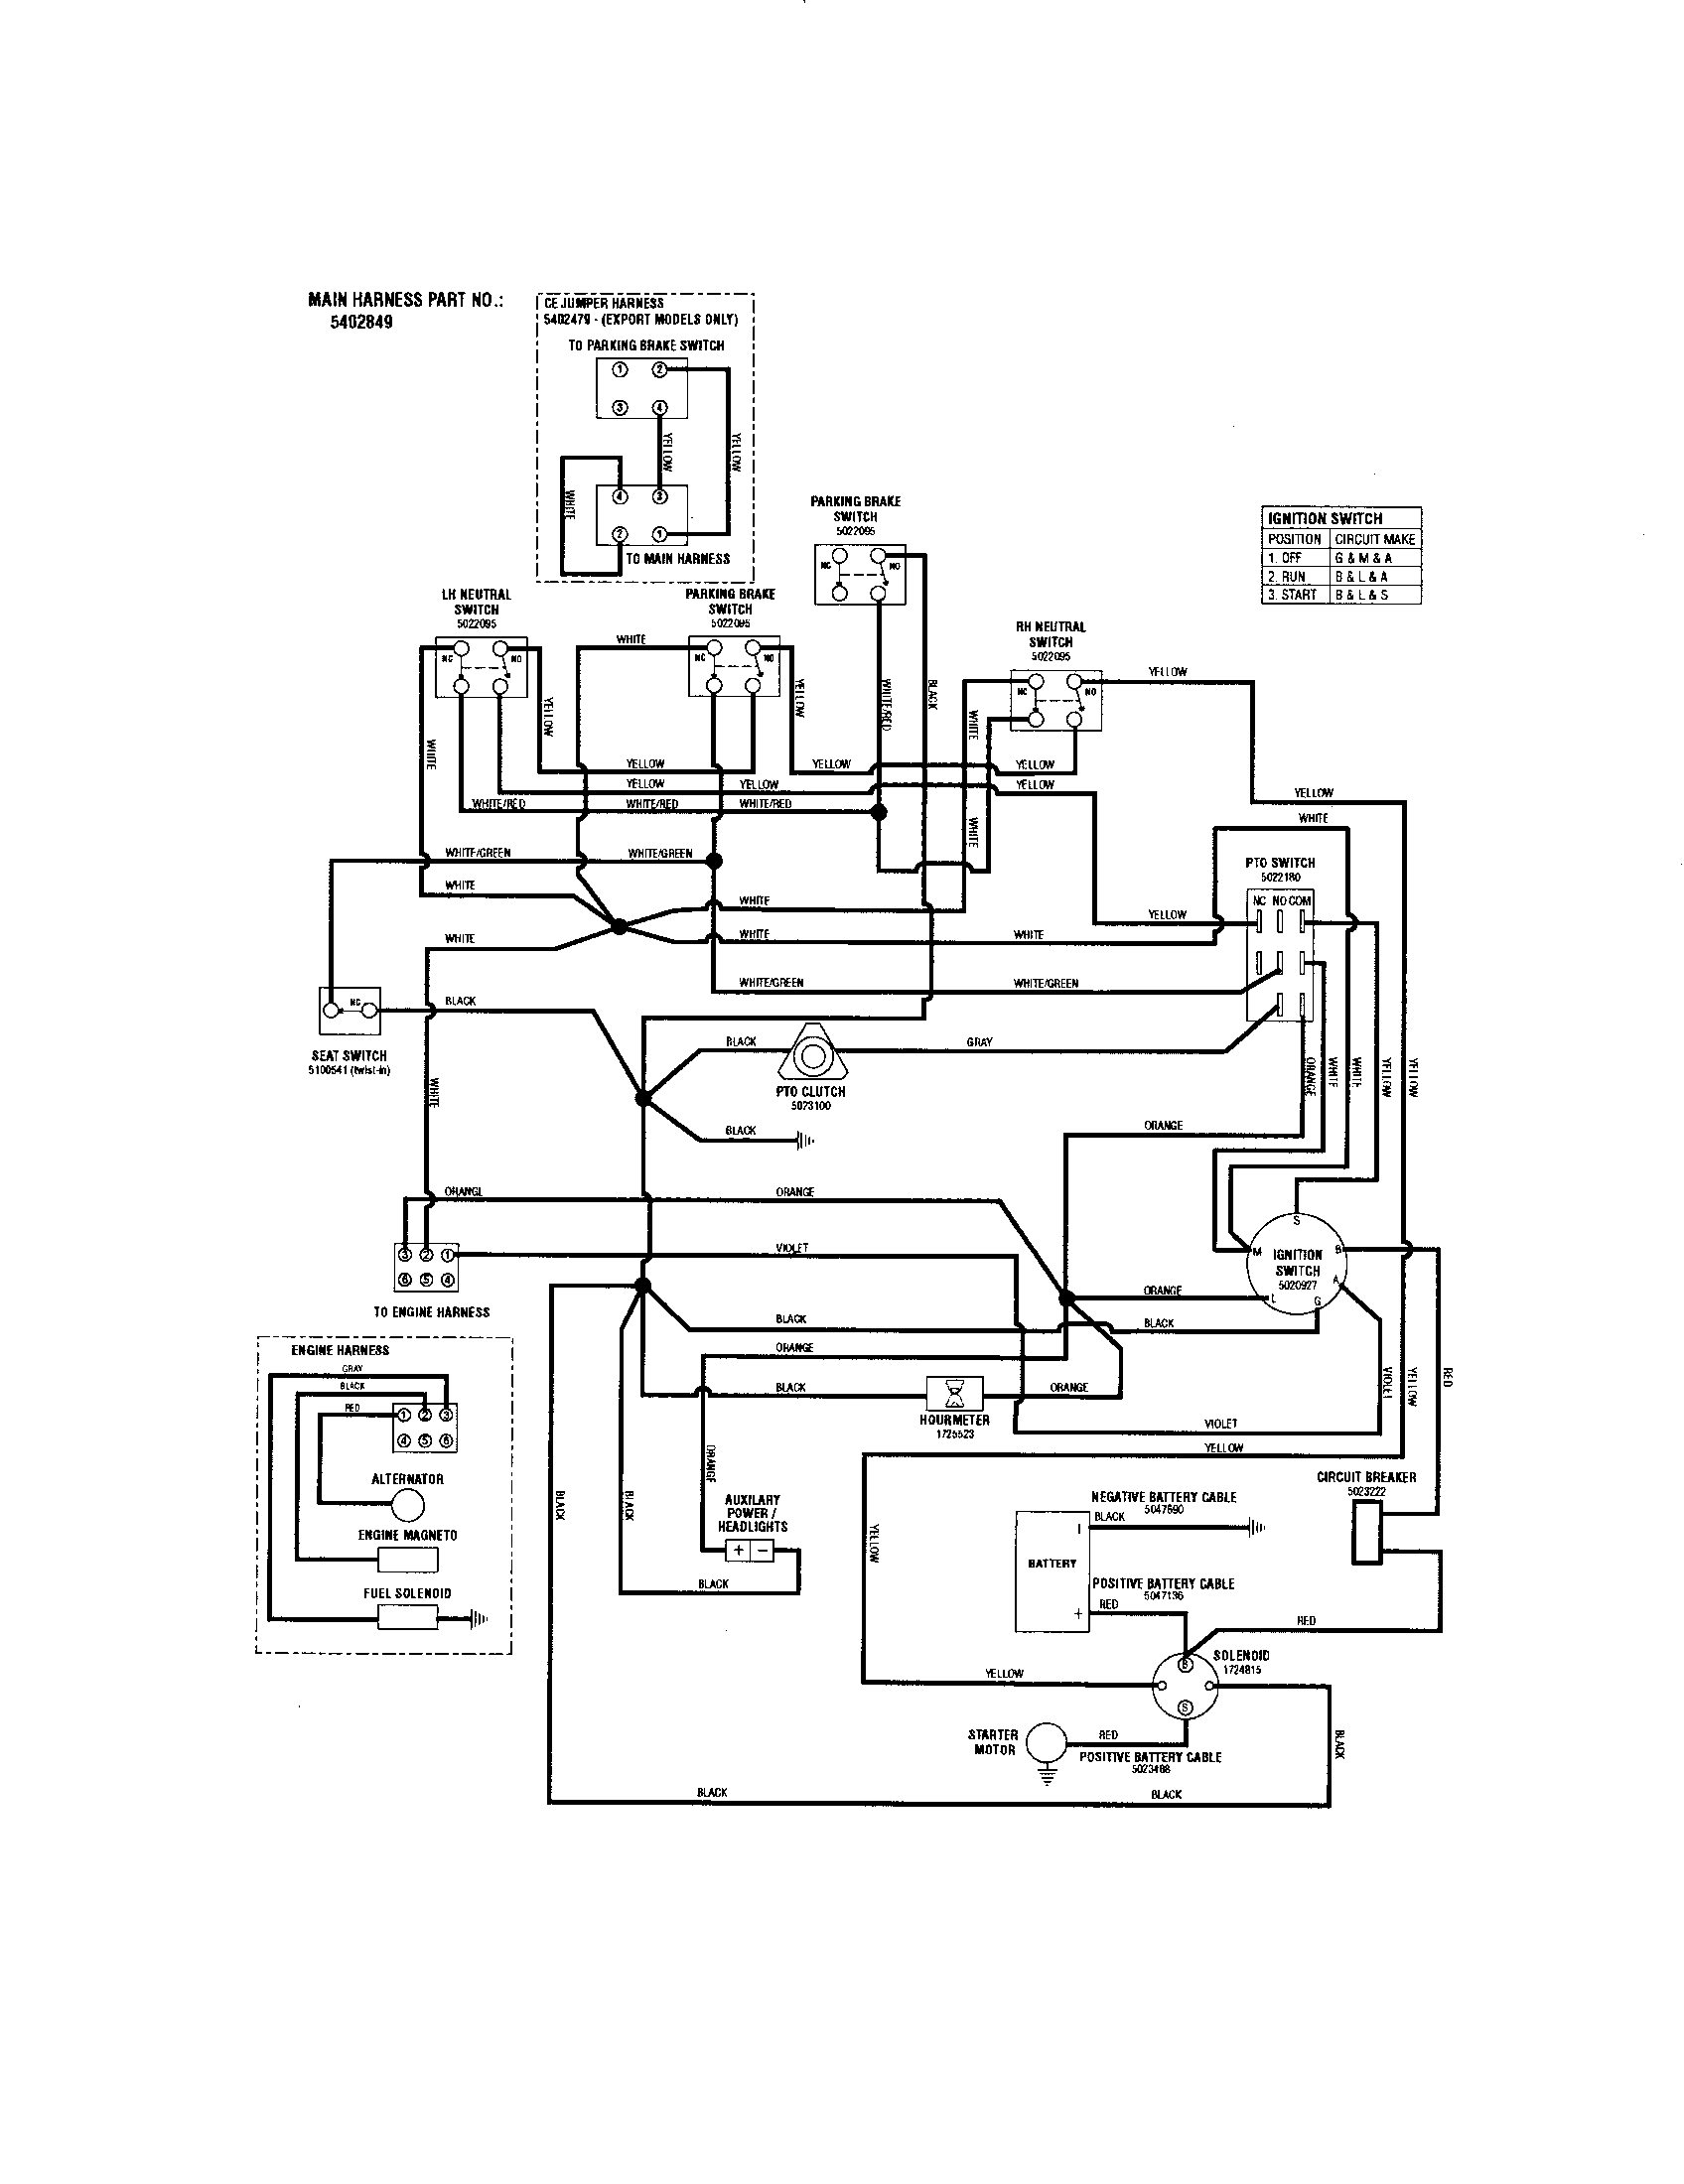 Ny 5767 Briggs Engine Diagram And Parts List For Snapper Ridingmowertractor Wiring Diagram